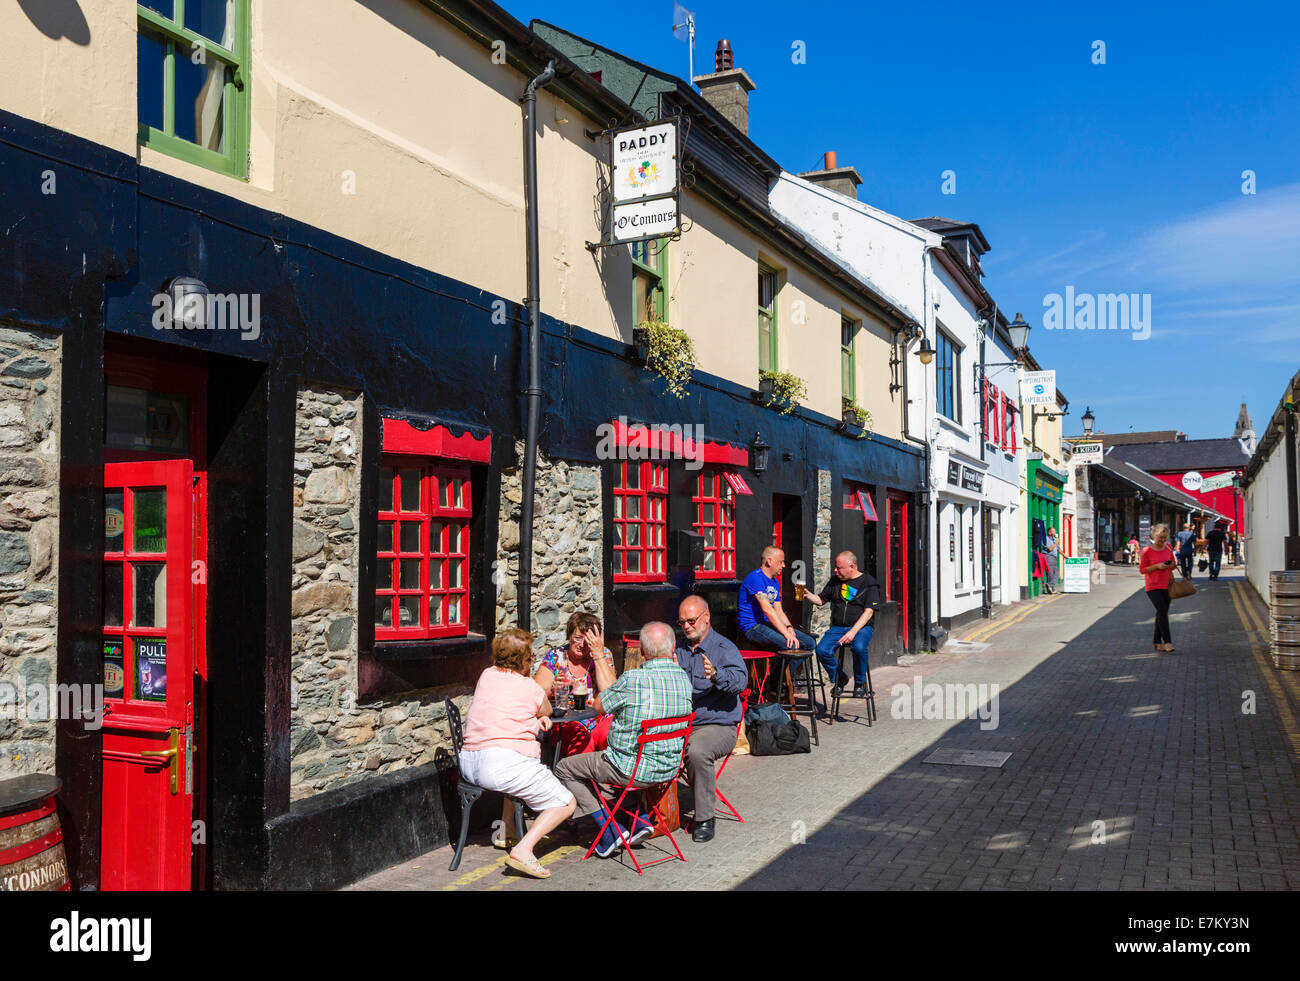 14fe5fe123670 Traditional pub on New Market Lane in the town centre, Killarney, County  Kerry, Republic of Ireland